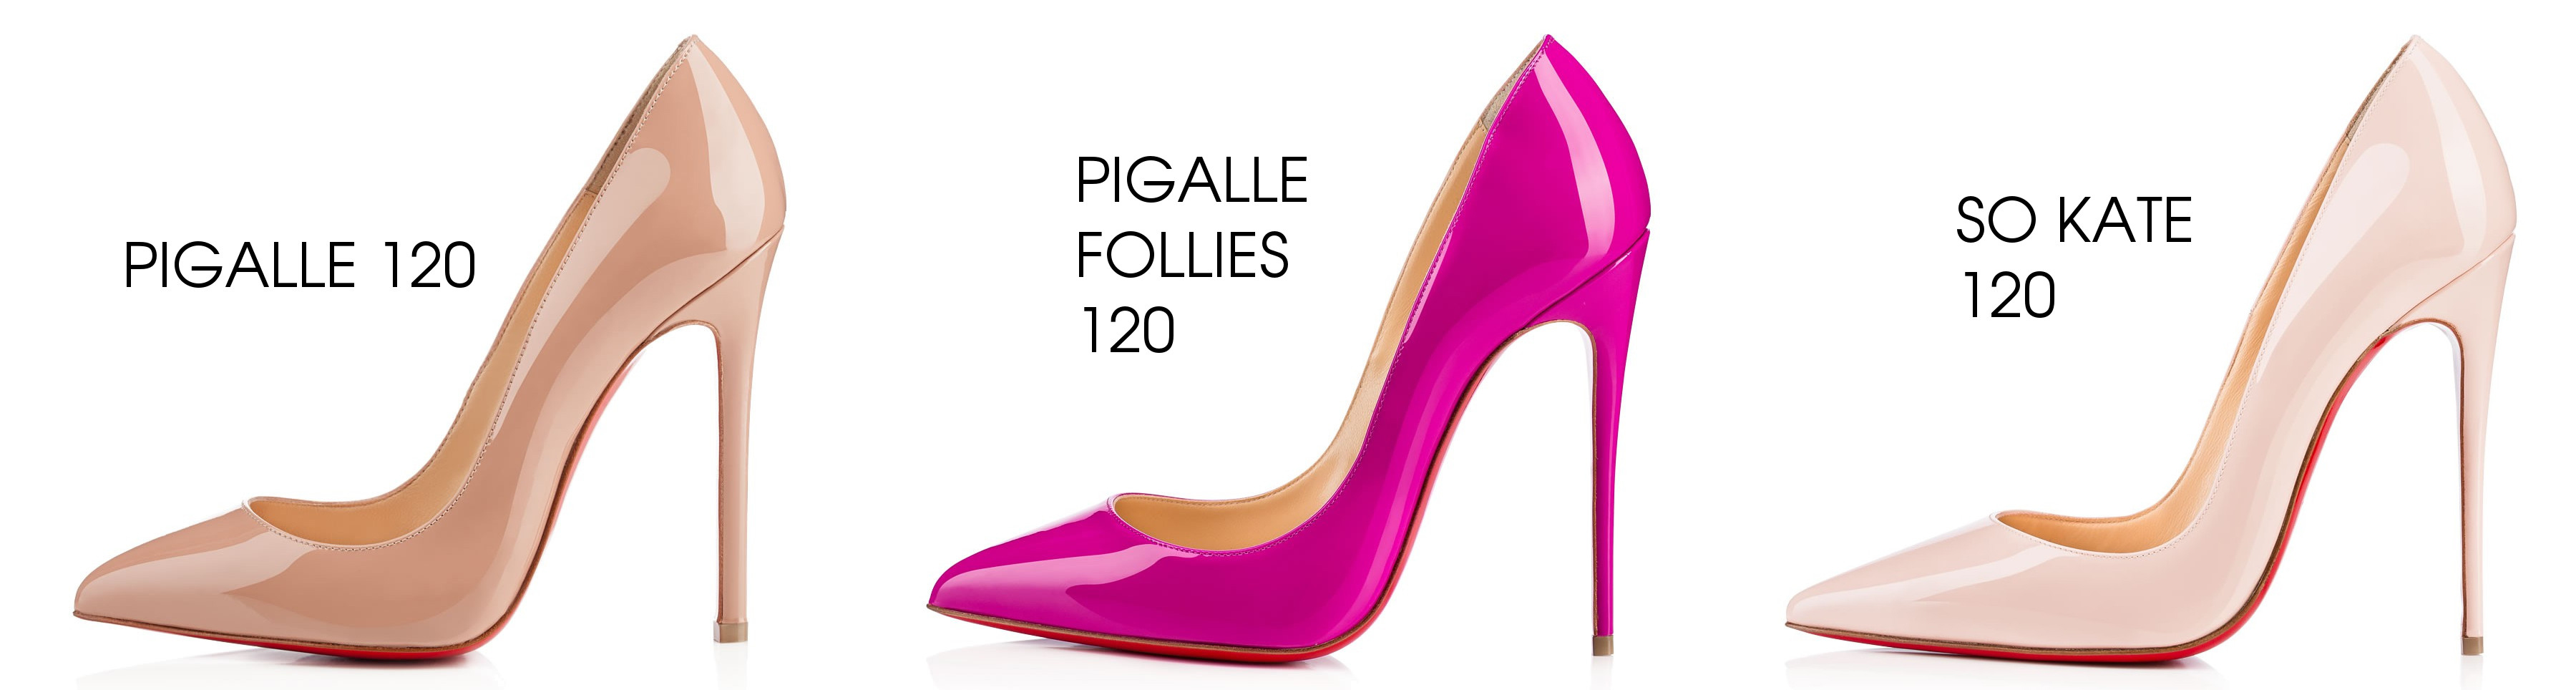 The Pigalle, Pigalle Follies and So Kate